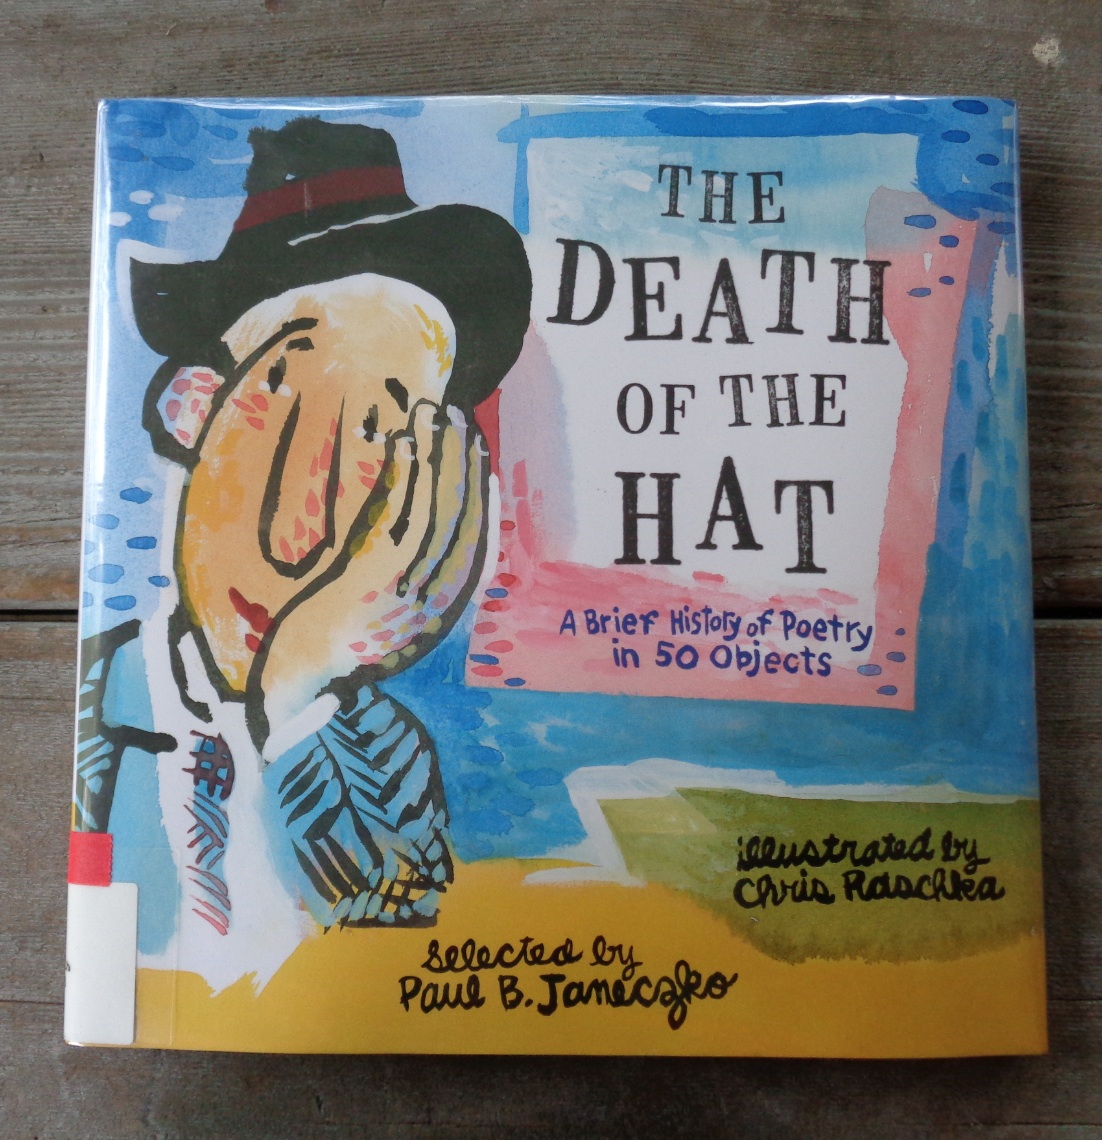 The Death of a Hat | julie rowan-zoch